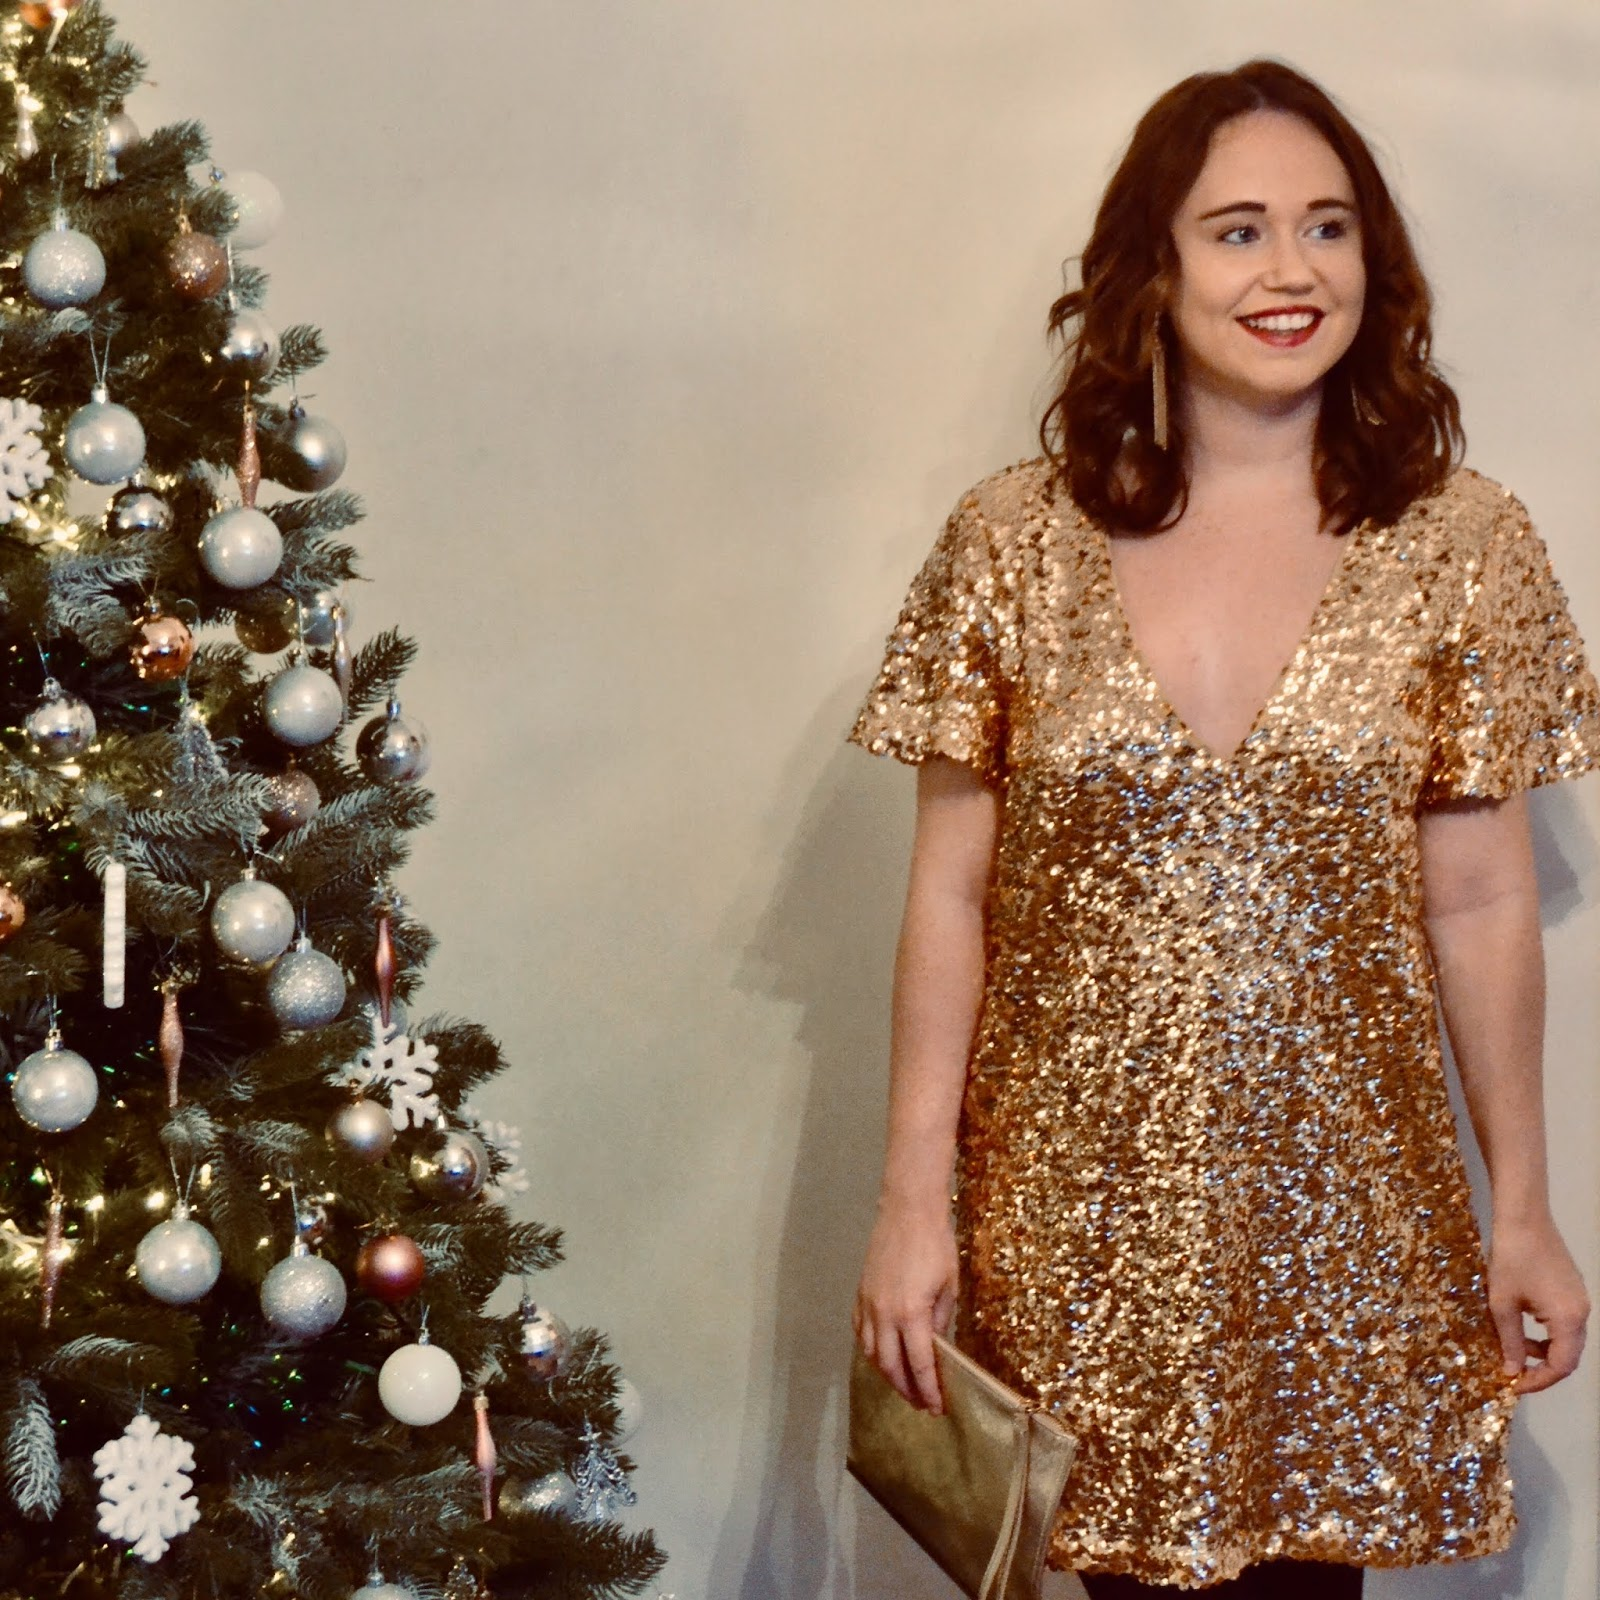 49f77c89bf17d Wearing a Sequin Dress to the Christmas Party - Call Me Liz